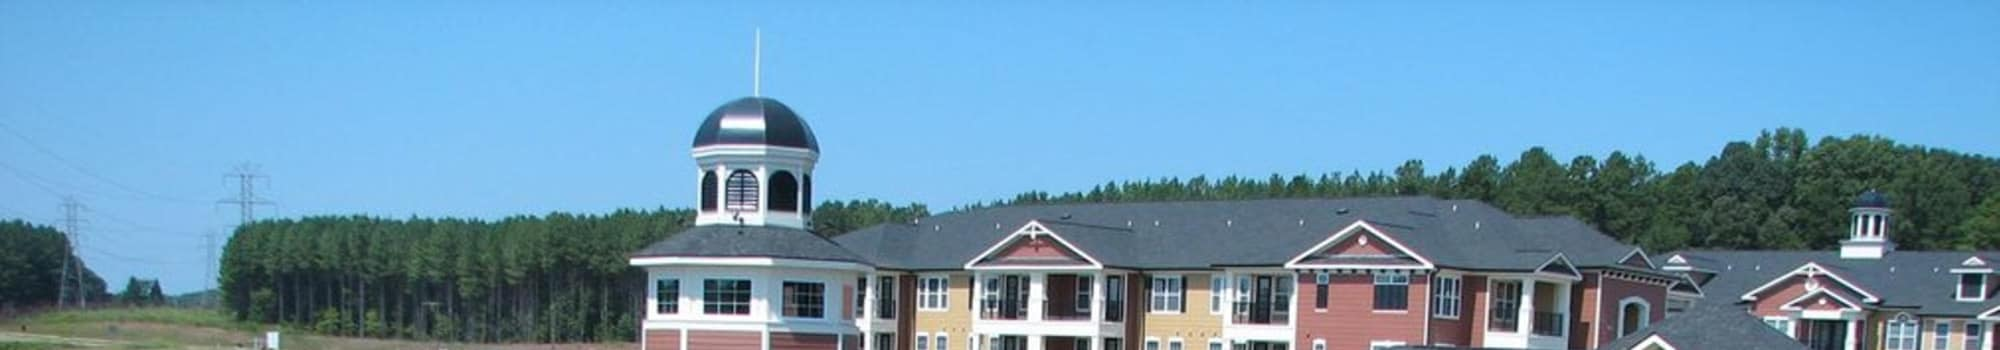 Information for residents of our apartments in The Vive in Kannapolis, North Carolina